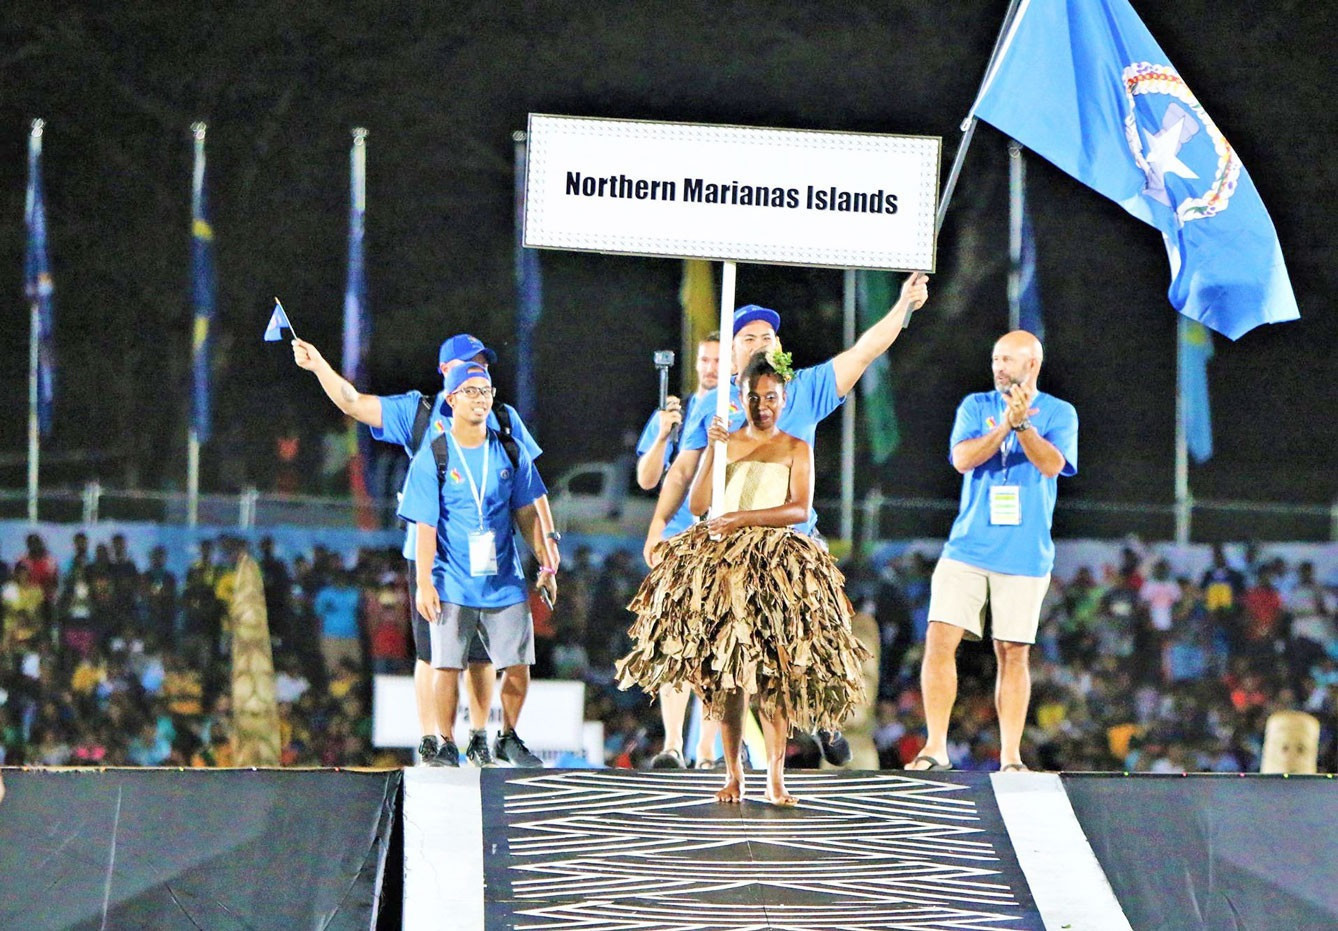 Northern Mariana Islands set to host golf tournament with proceeds going towards hosting of 2022 Pacific Mini Games